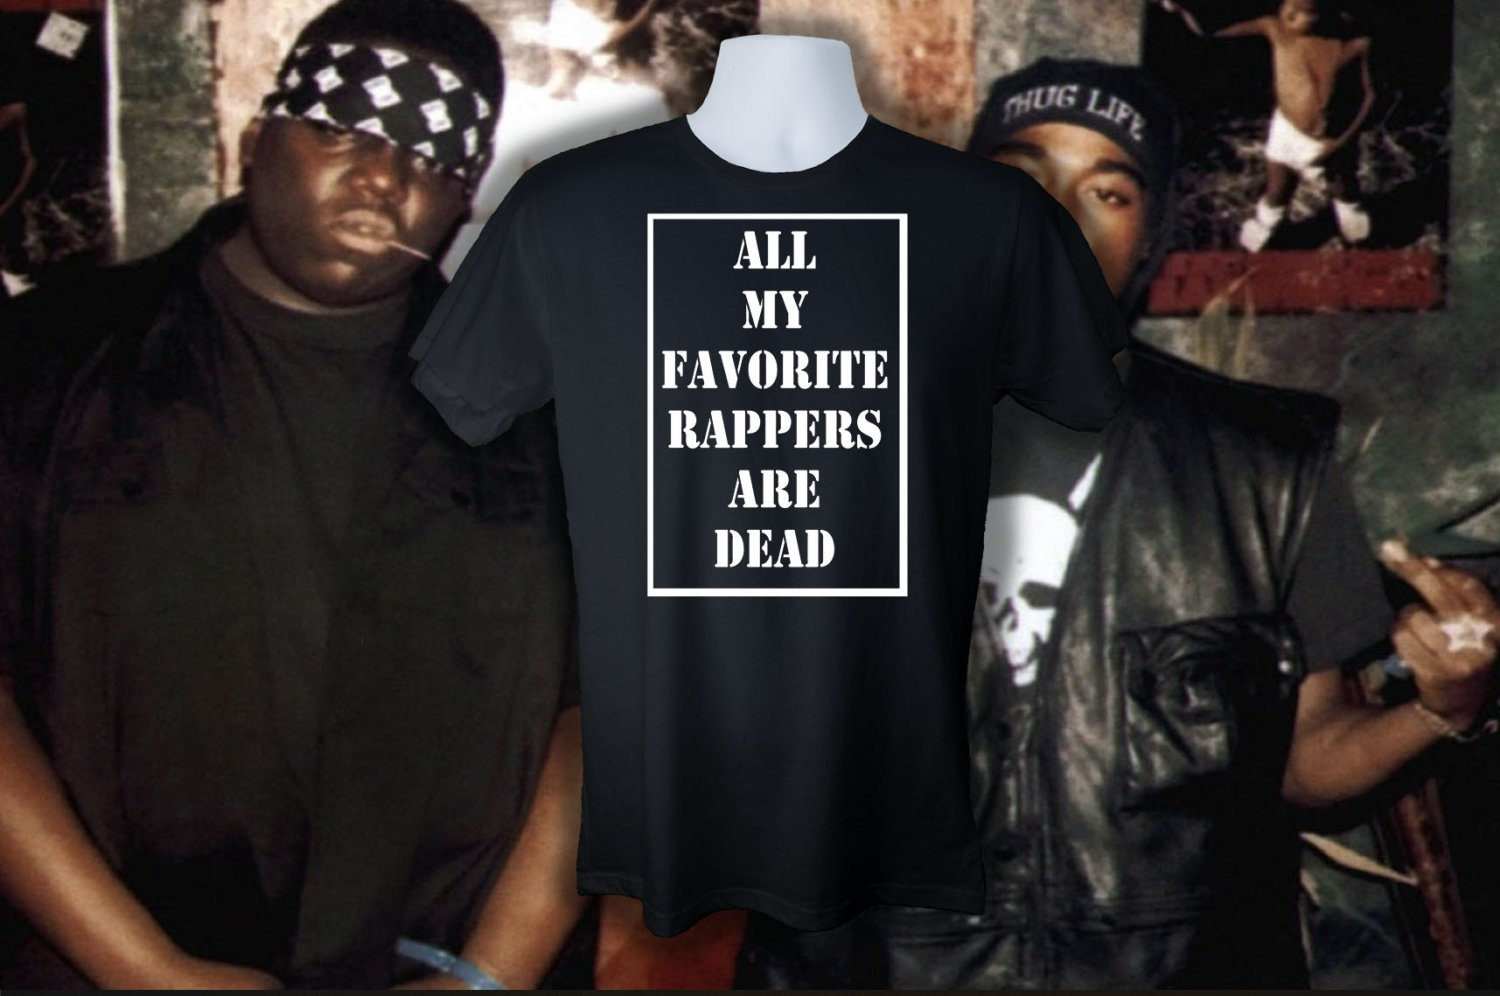 ALL MY FAVORITE RAPPERS ARE DEAD T SHIRT LARGE